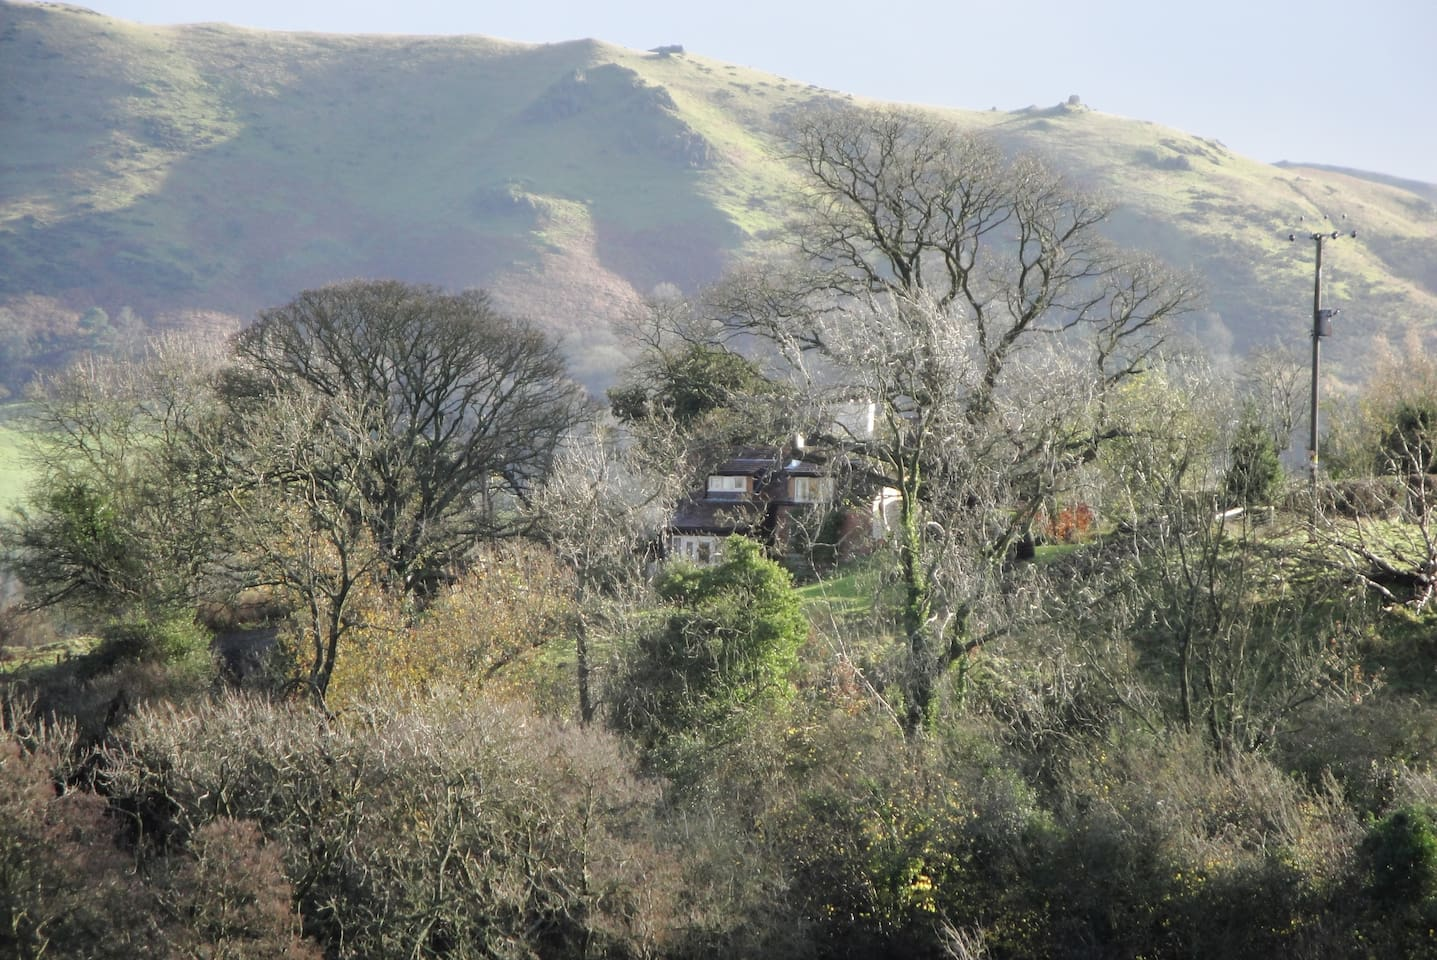 A stunning location in the hills- but only 5 minutes drive from the little town of Church Stretton